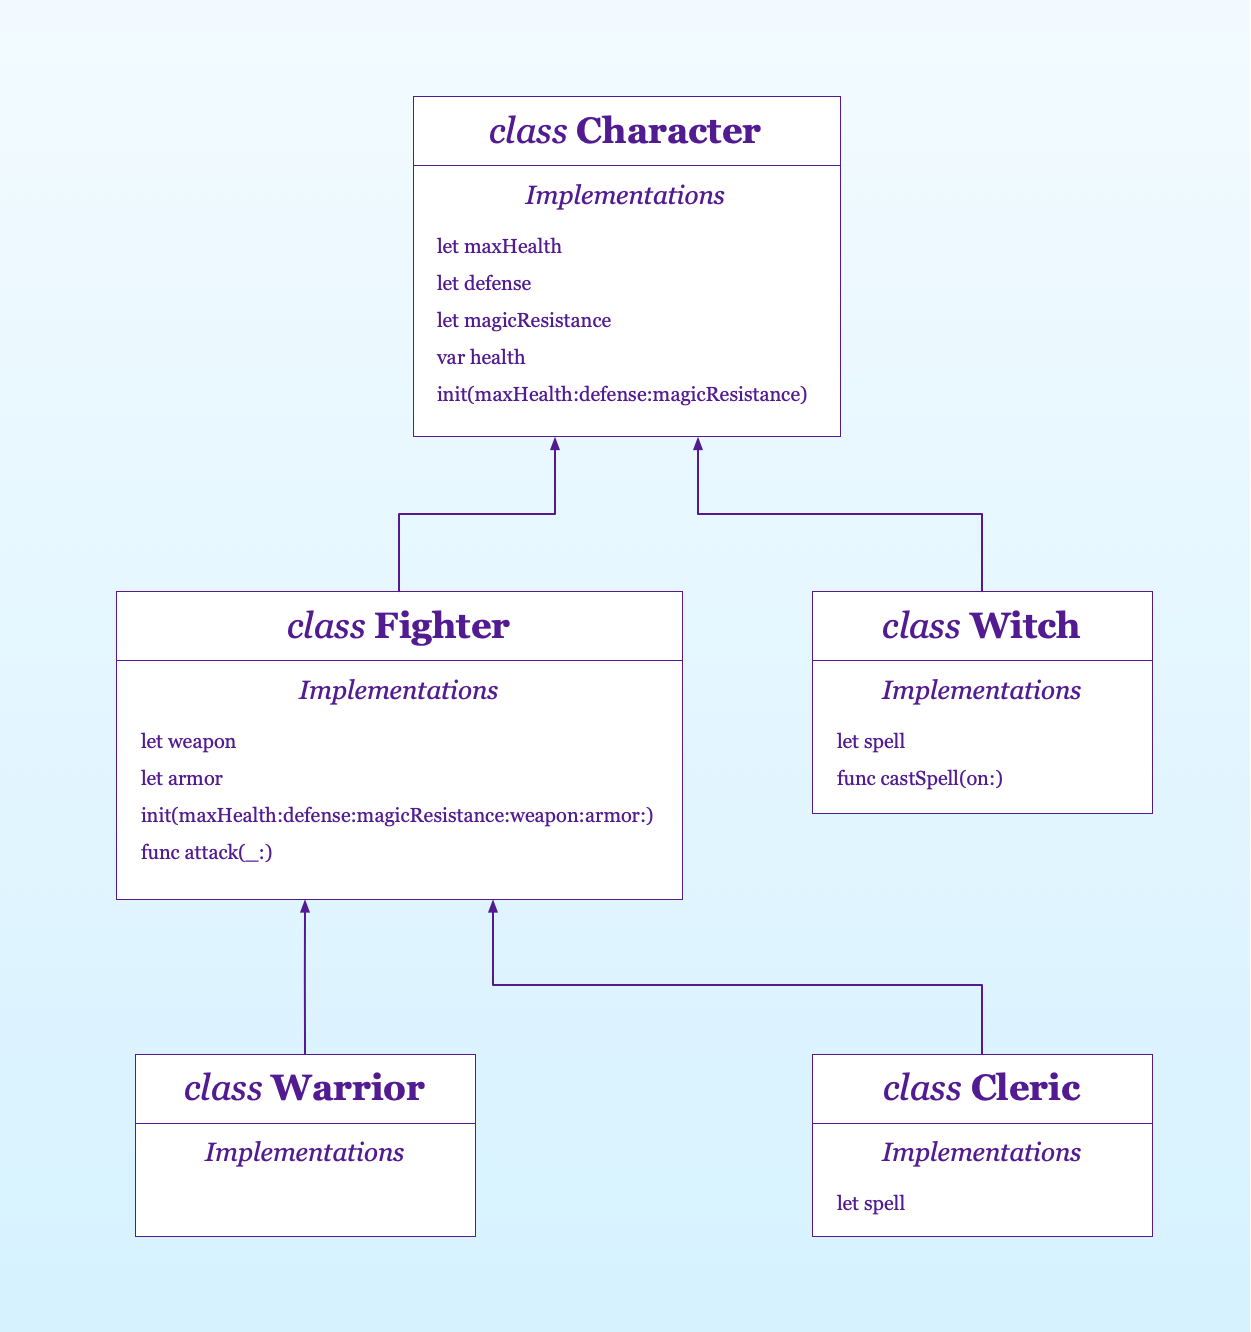 abstracting common functionality in a superclass in an object-oriented hierarchy